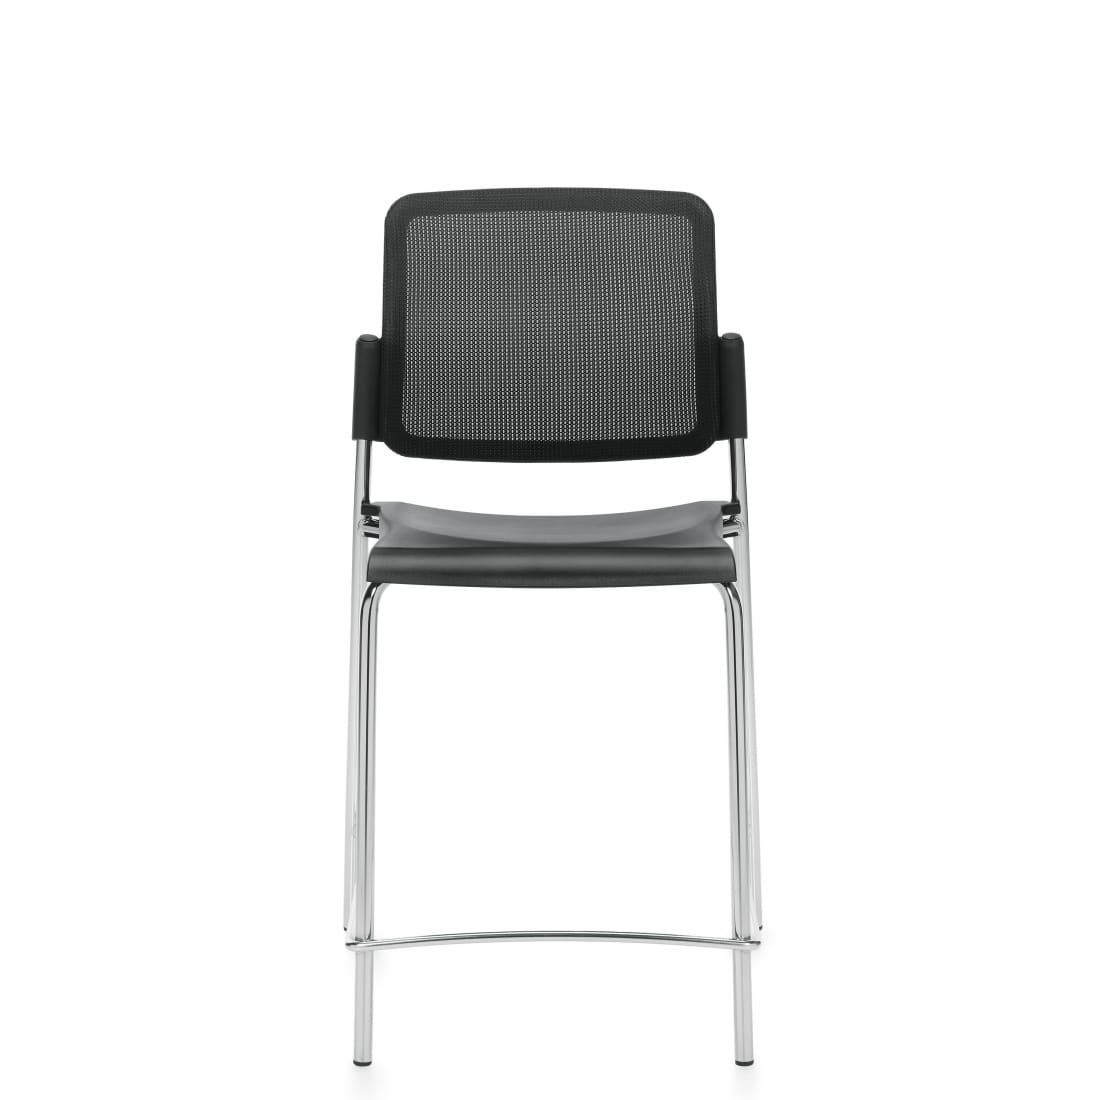 Armless Counter Stool, Black Polypropylene Seat & Mesh Back With Chrome Frame (6558CSMB)